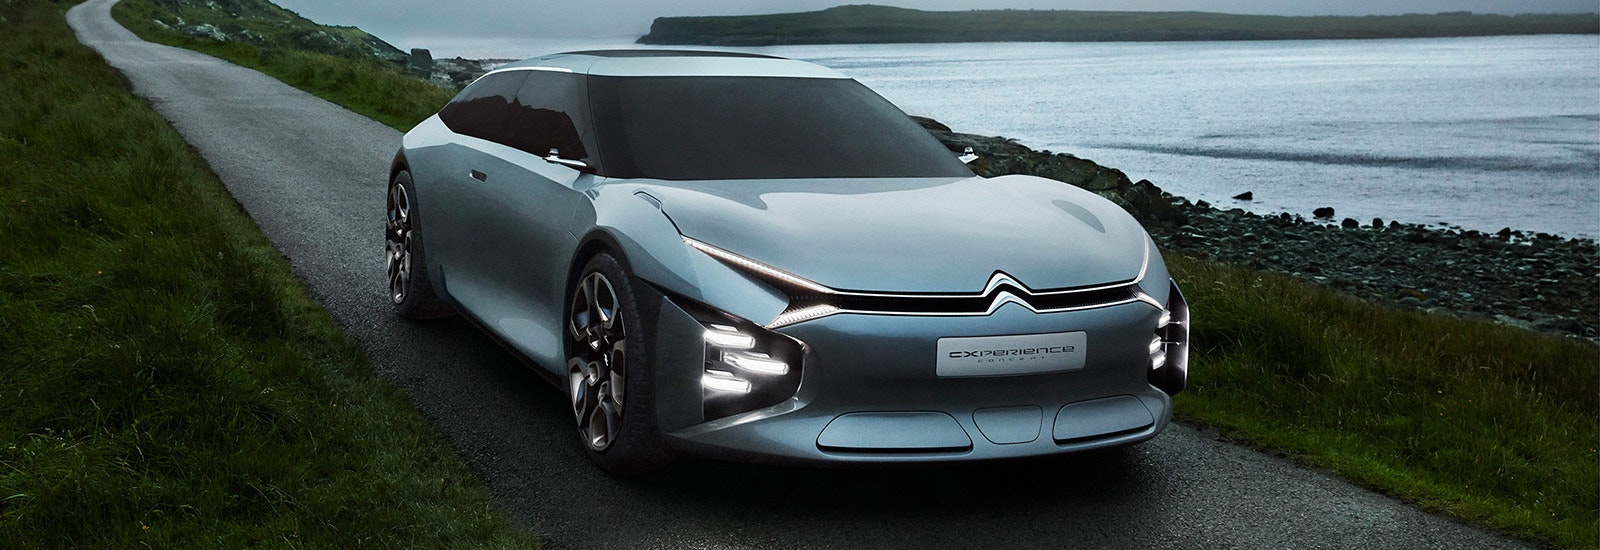 2019 Citroen C6 Price Specs Release Date Carwow